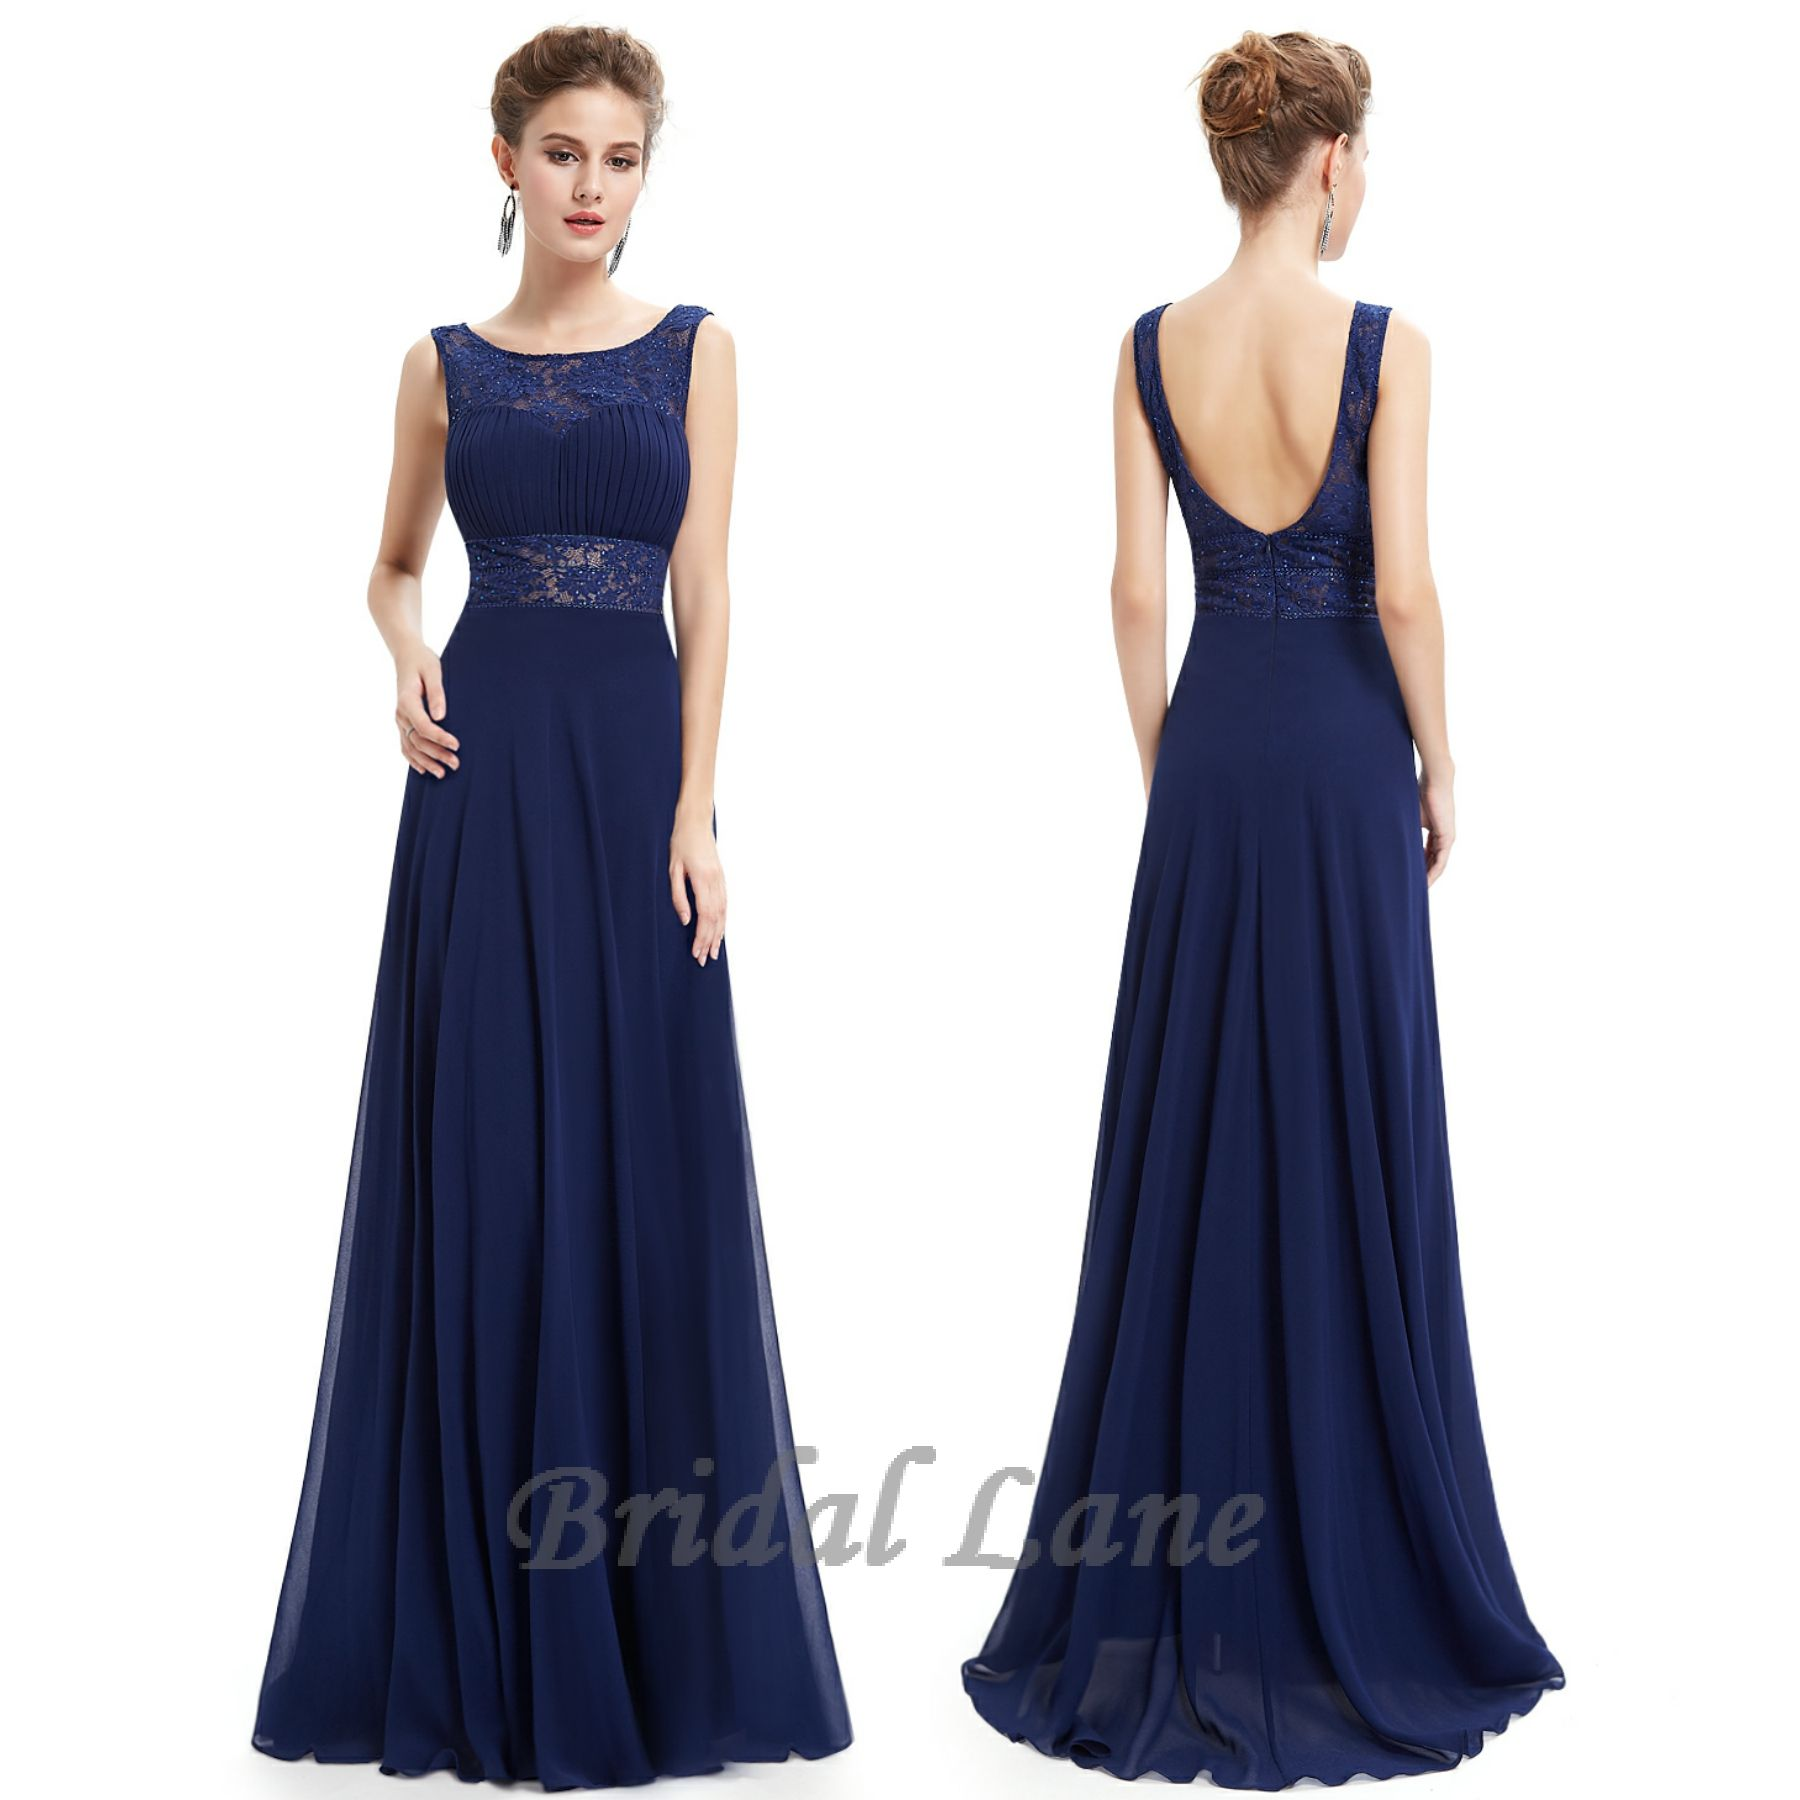 Matric dance dresses matric farewell dresses evening dresses pictures - Navy Blue Evening Dresses With Open Back For Matric Ball Matric Farewell In Cape Town